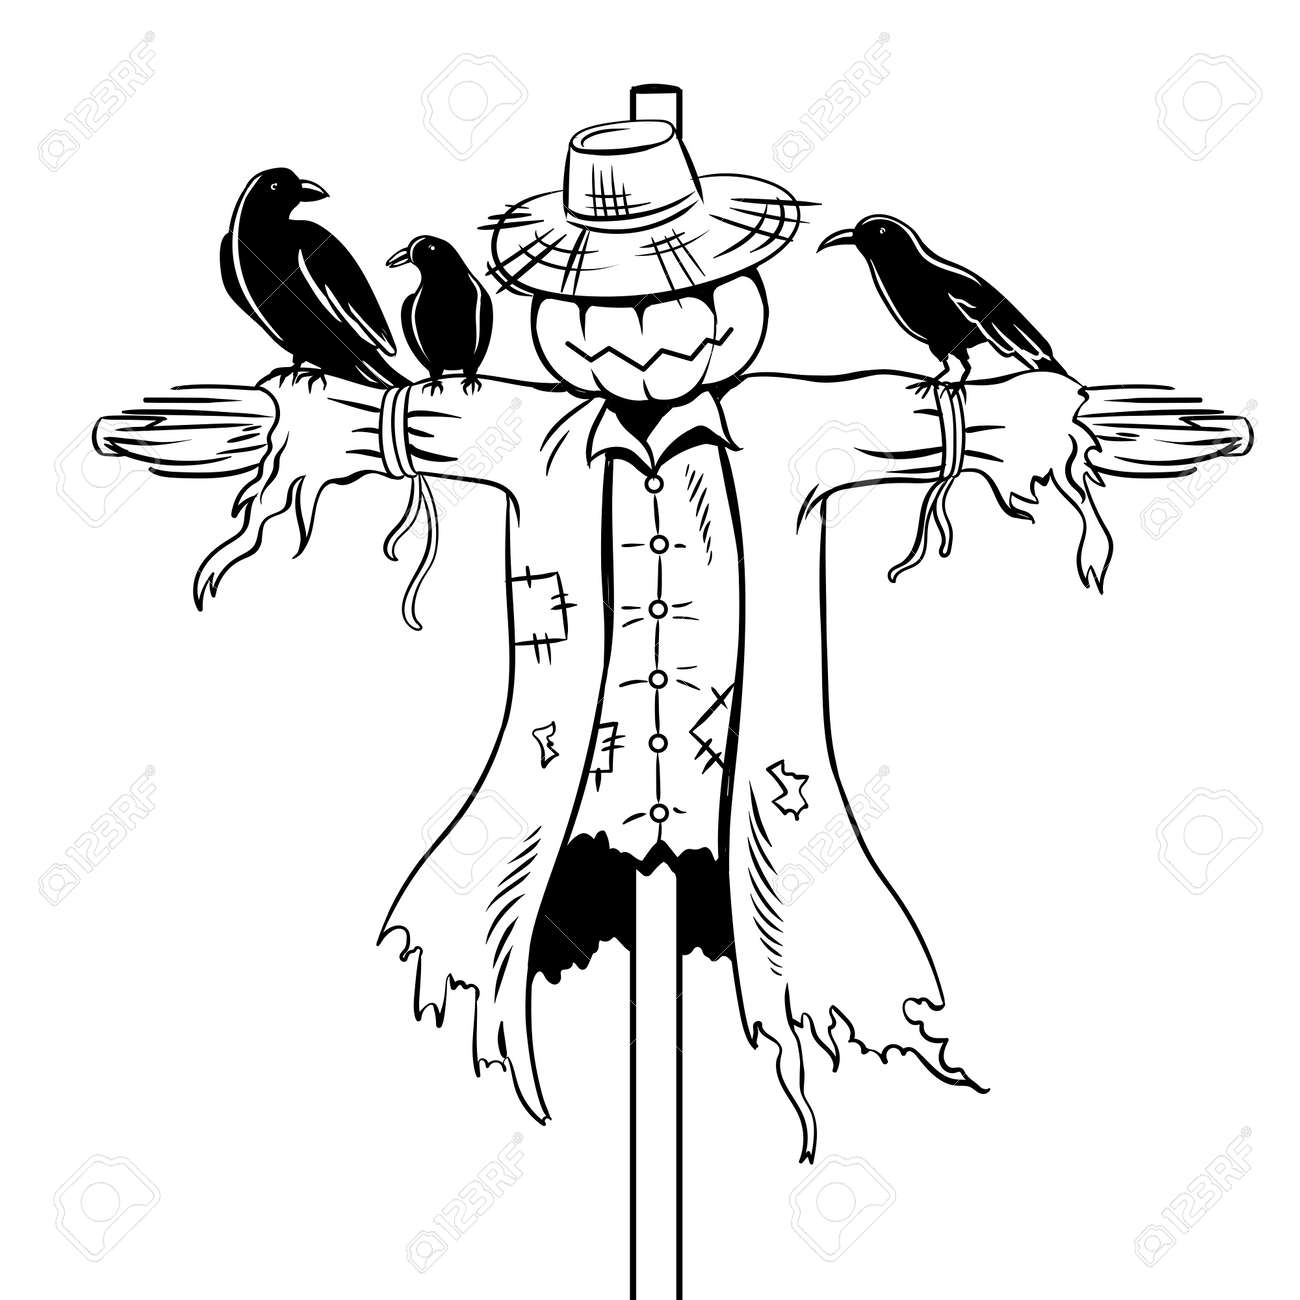 Scarecrow coloring book vector illustration.